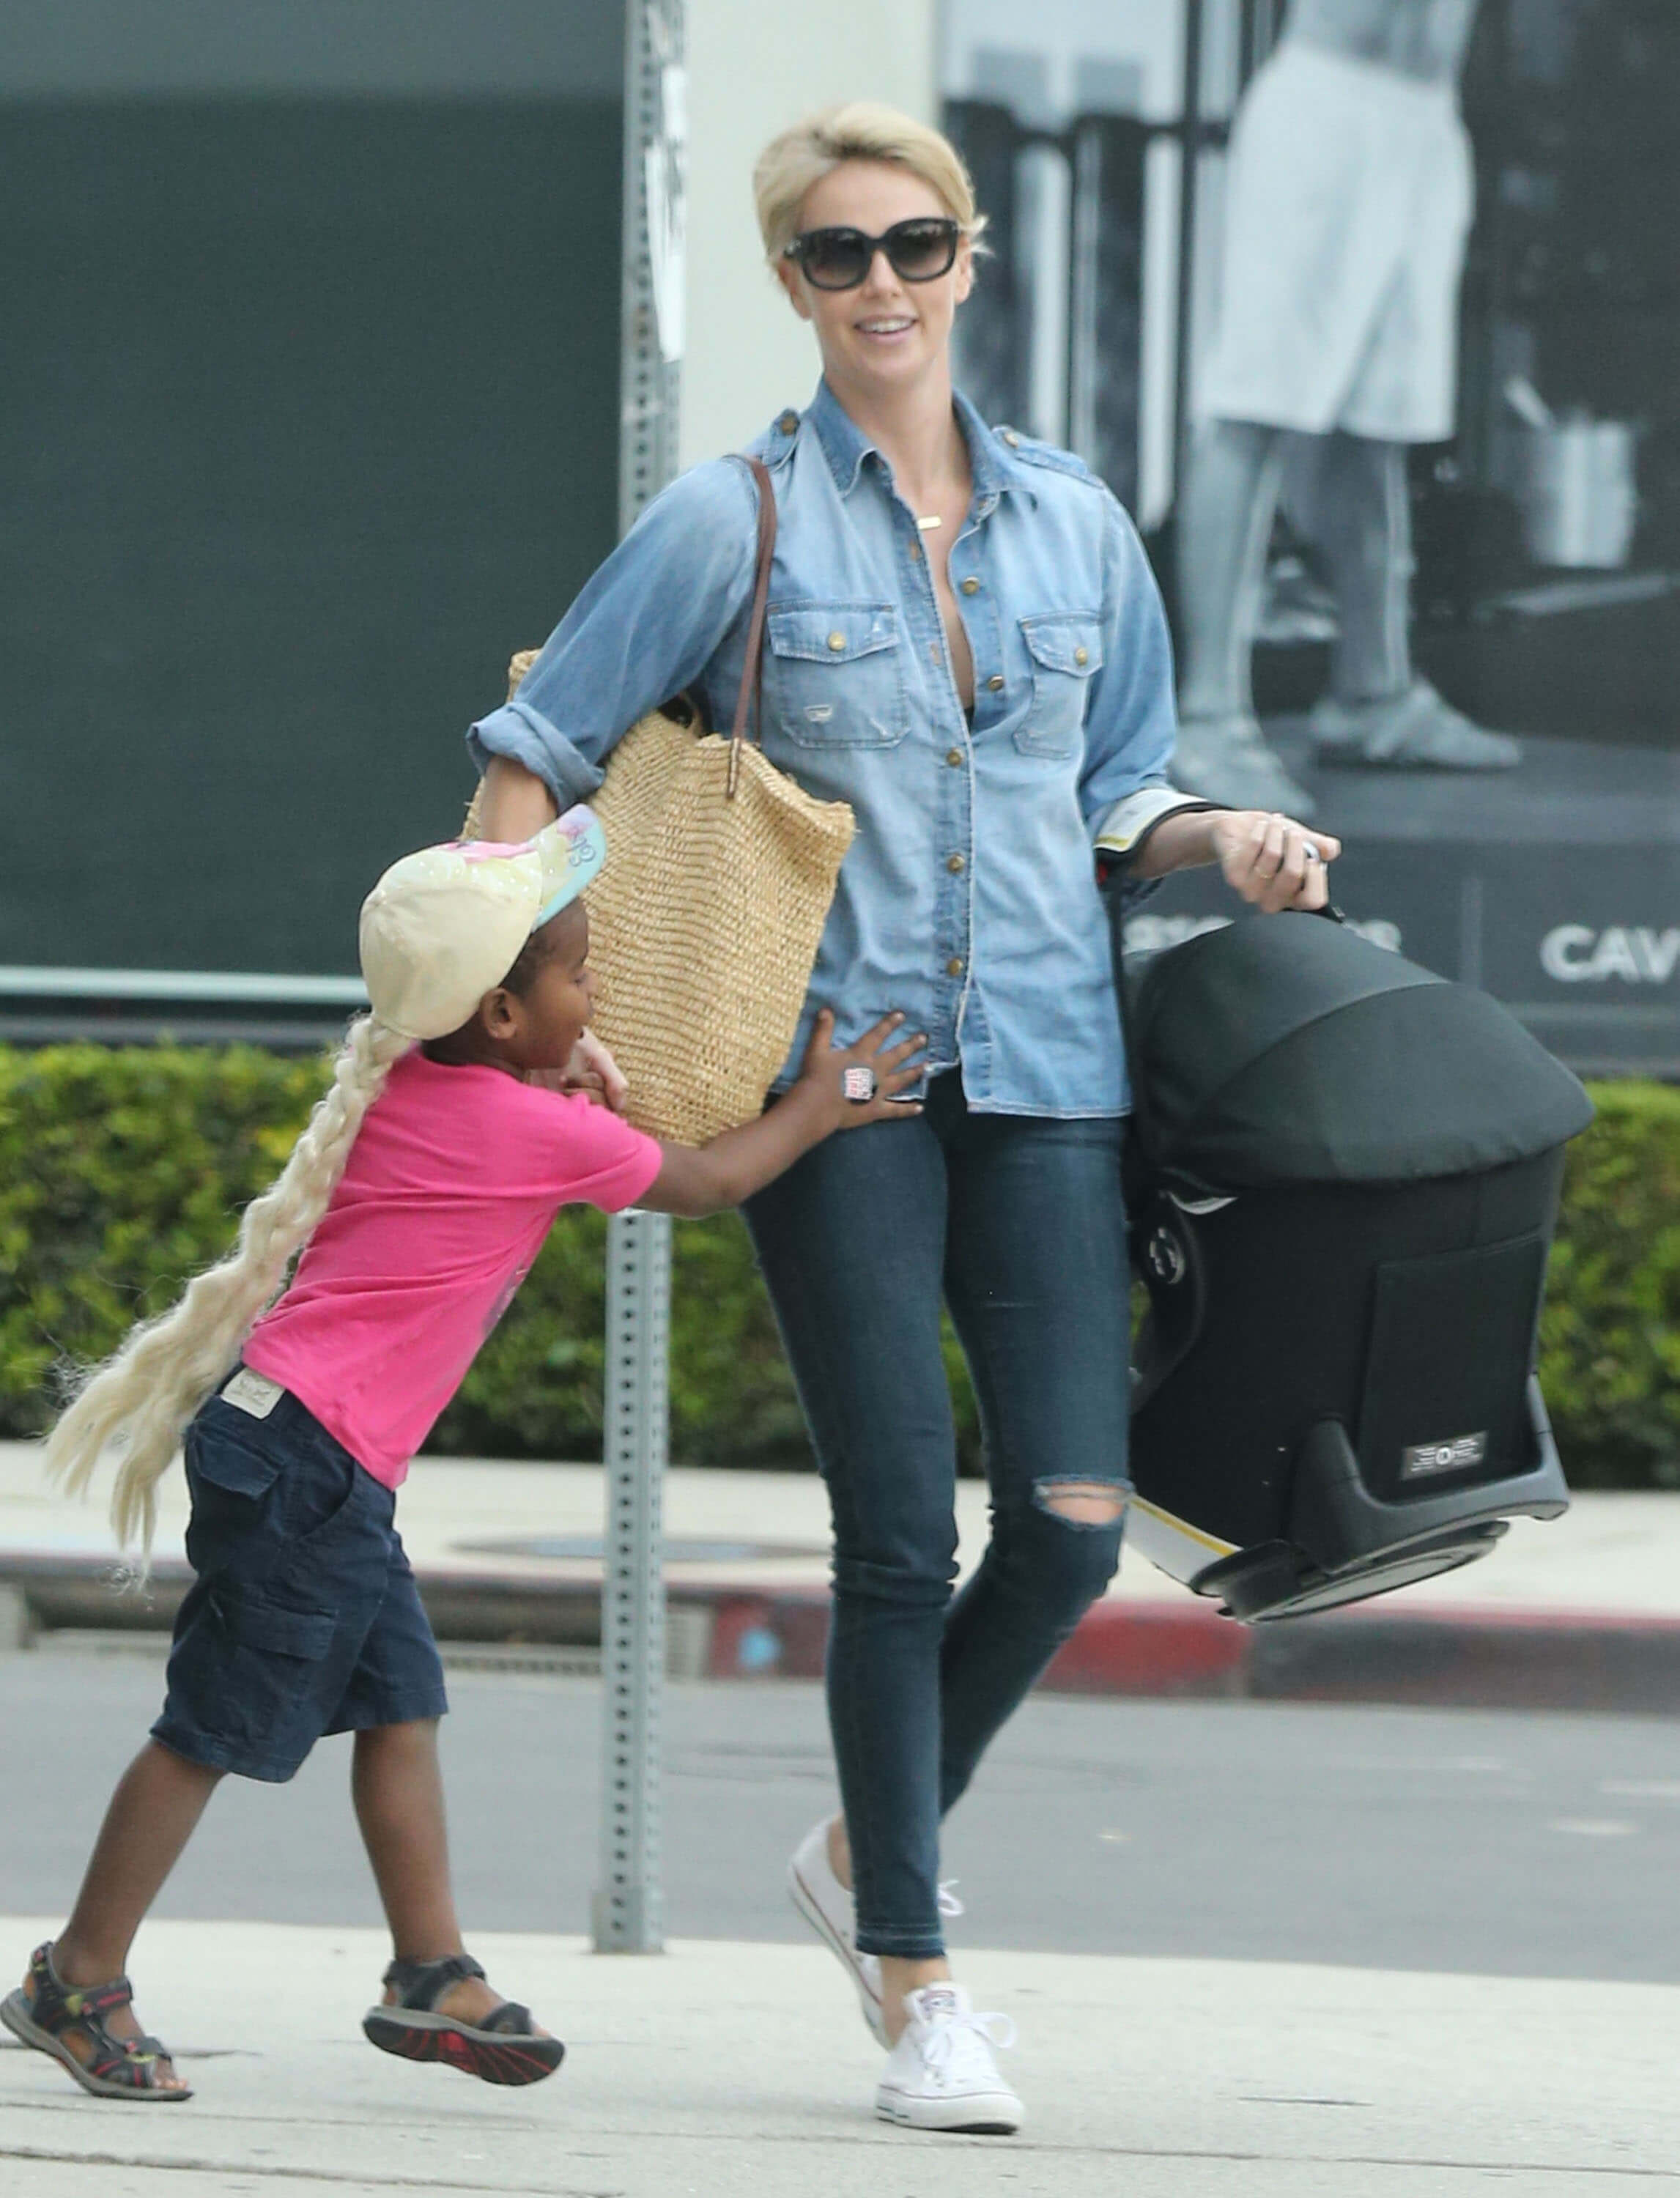 Exclusive... 51881071 Actress Charlize Theron spotted out with her new baby daughter, August in Hollywood, California on October 16, 2015. Her son Jackson is wearing a pink t-shirt and Elsa wig. NO INTERNET USE WITHOUT PRIOR AGREEMENT FameFlynet, Inc - Beverly Hills, CA, USA - +1 (818) 307-4813